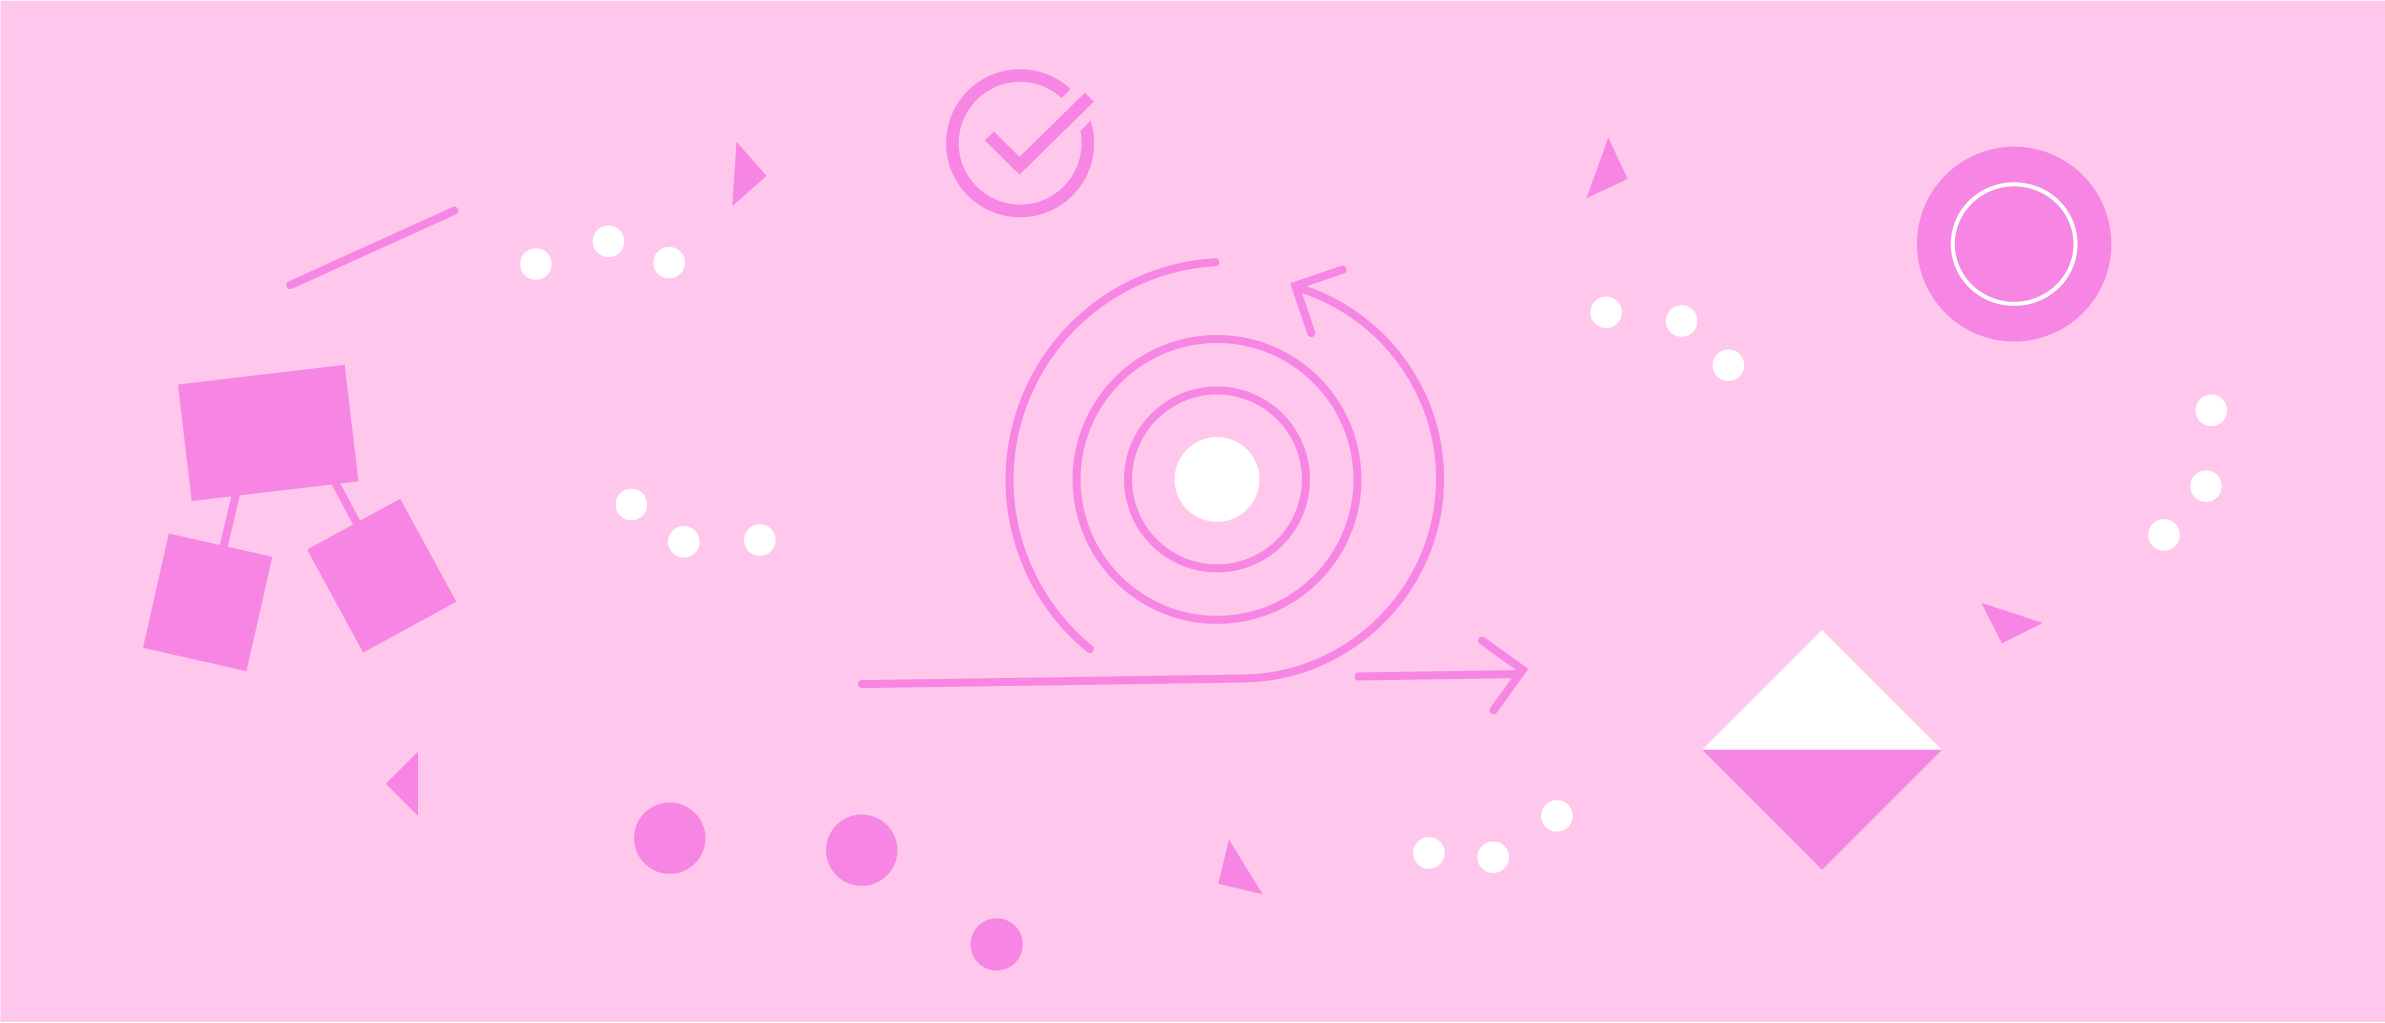 tray-resourcetile-mktautomation-pink@4x